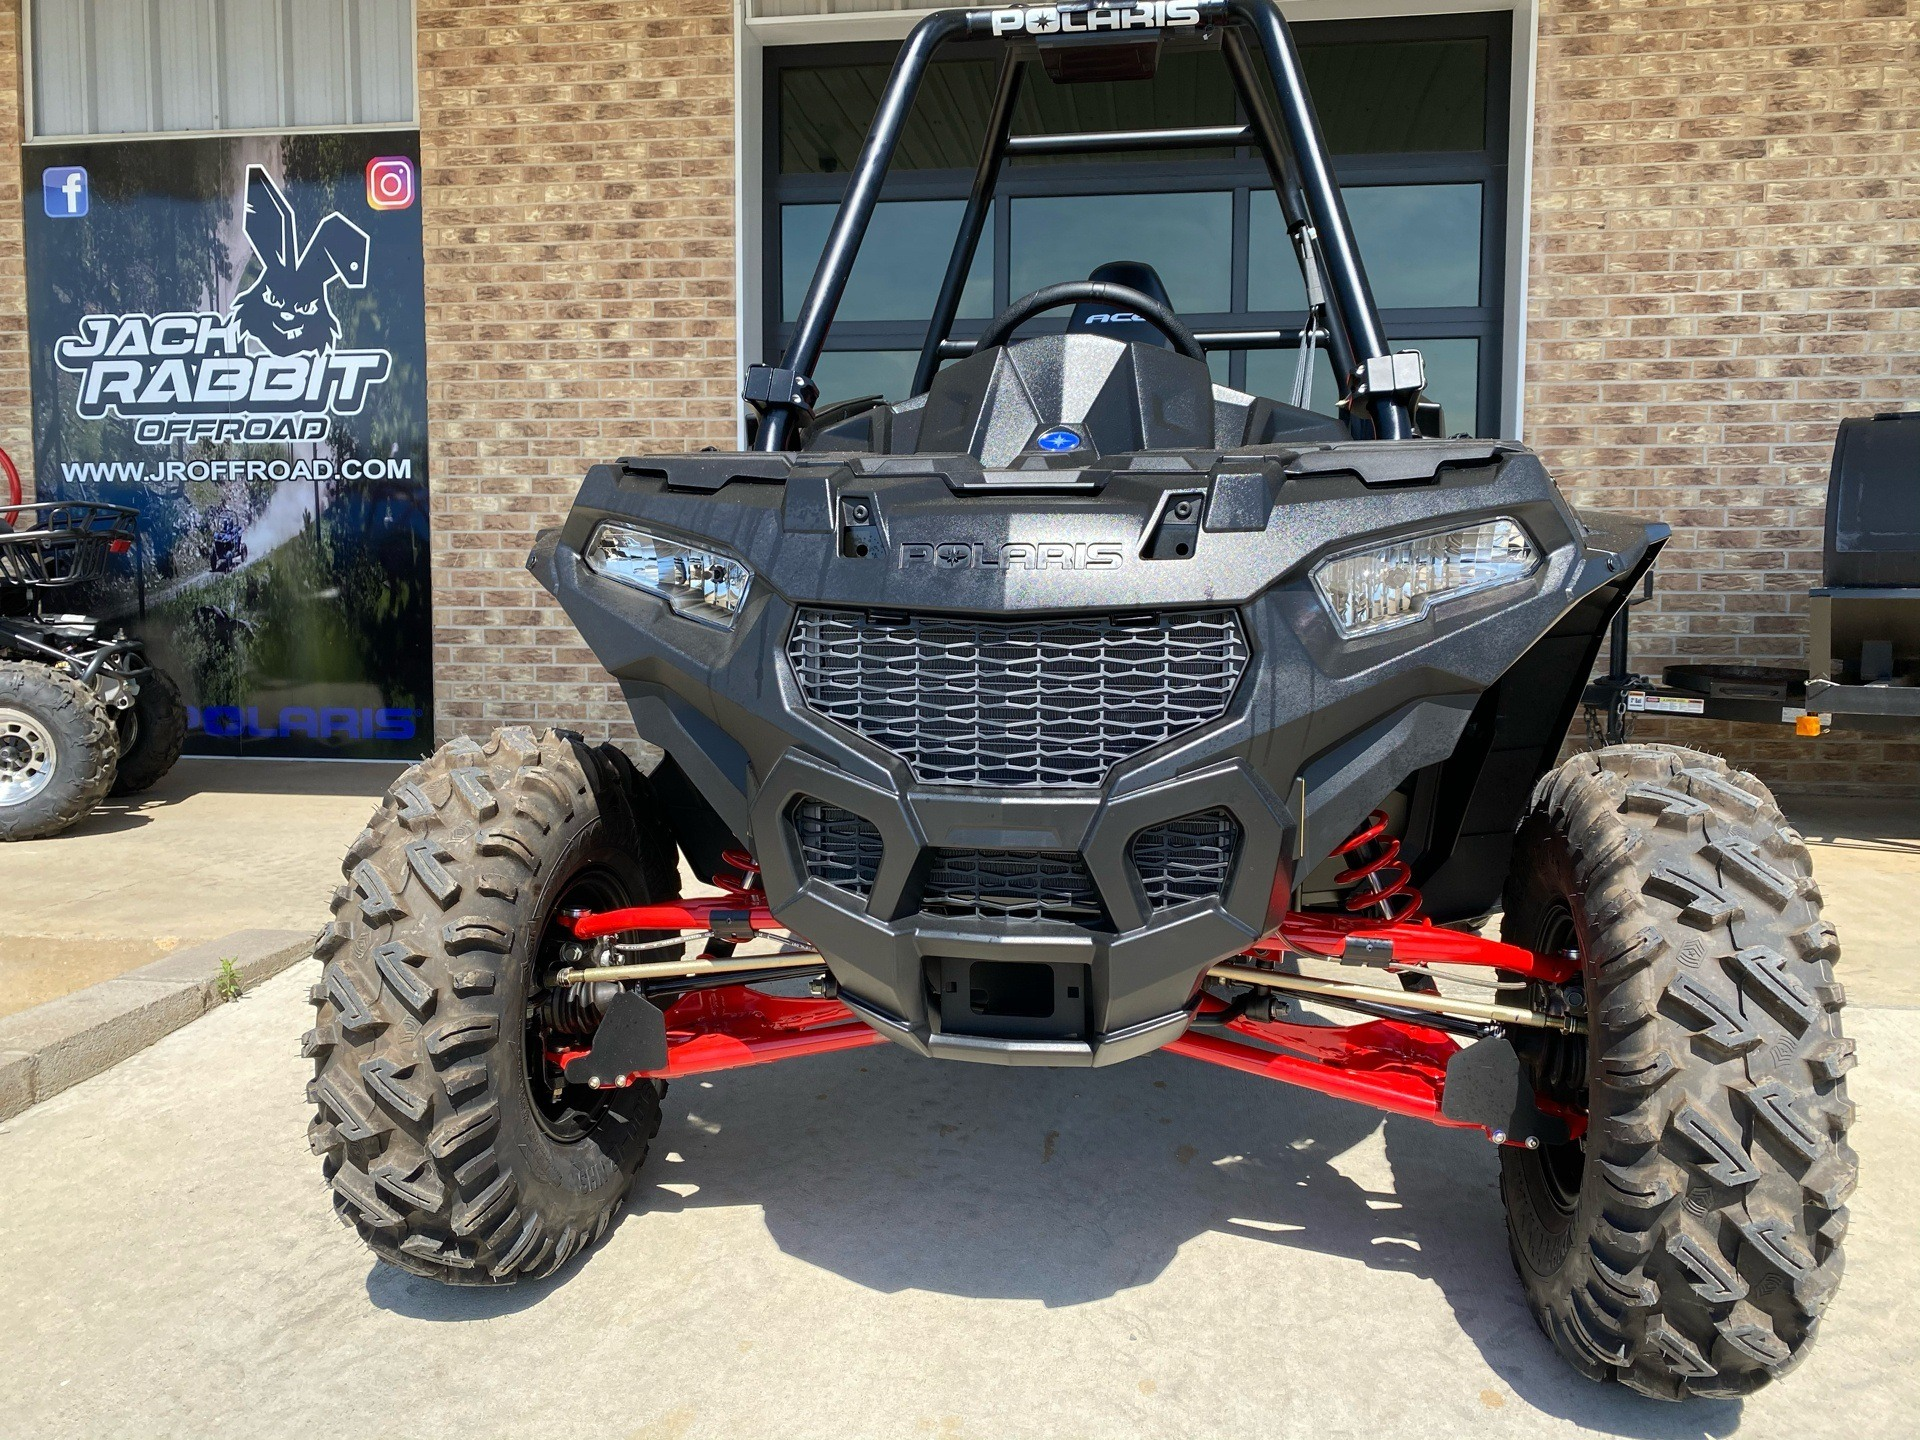 2019 Polaris Ace 900 XC in Marshall, Texas - Photo 10